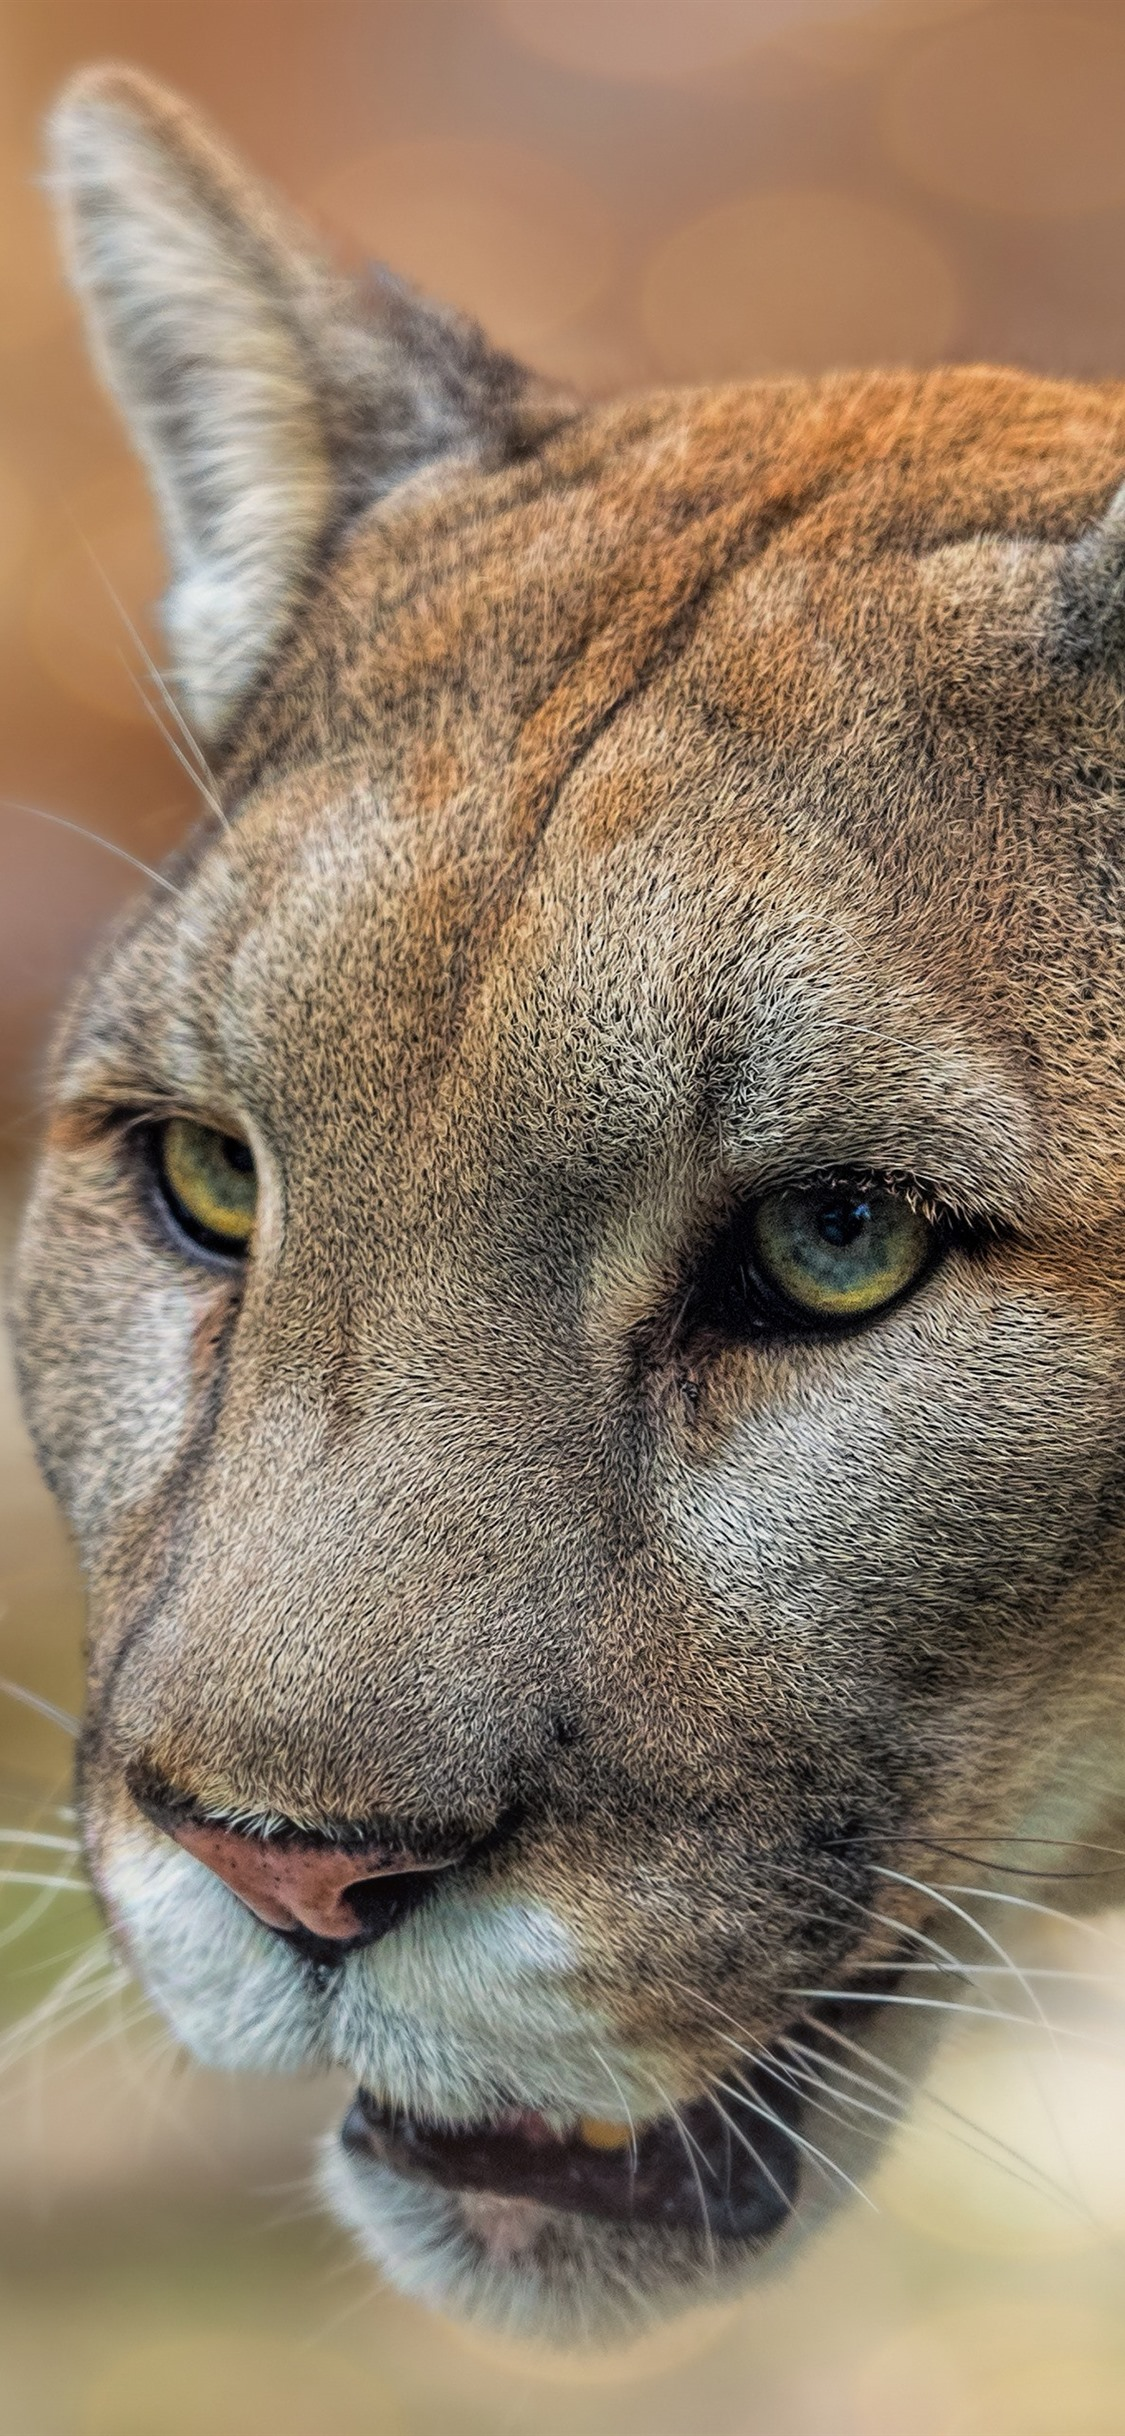 Mountain Lion Puma Face Eyes Wildlife 1125x2436 Iphone